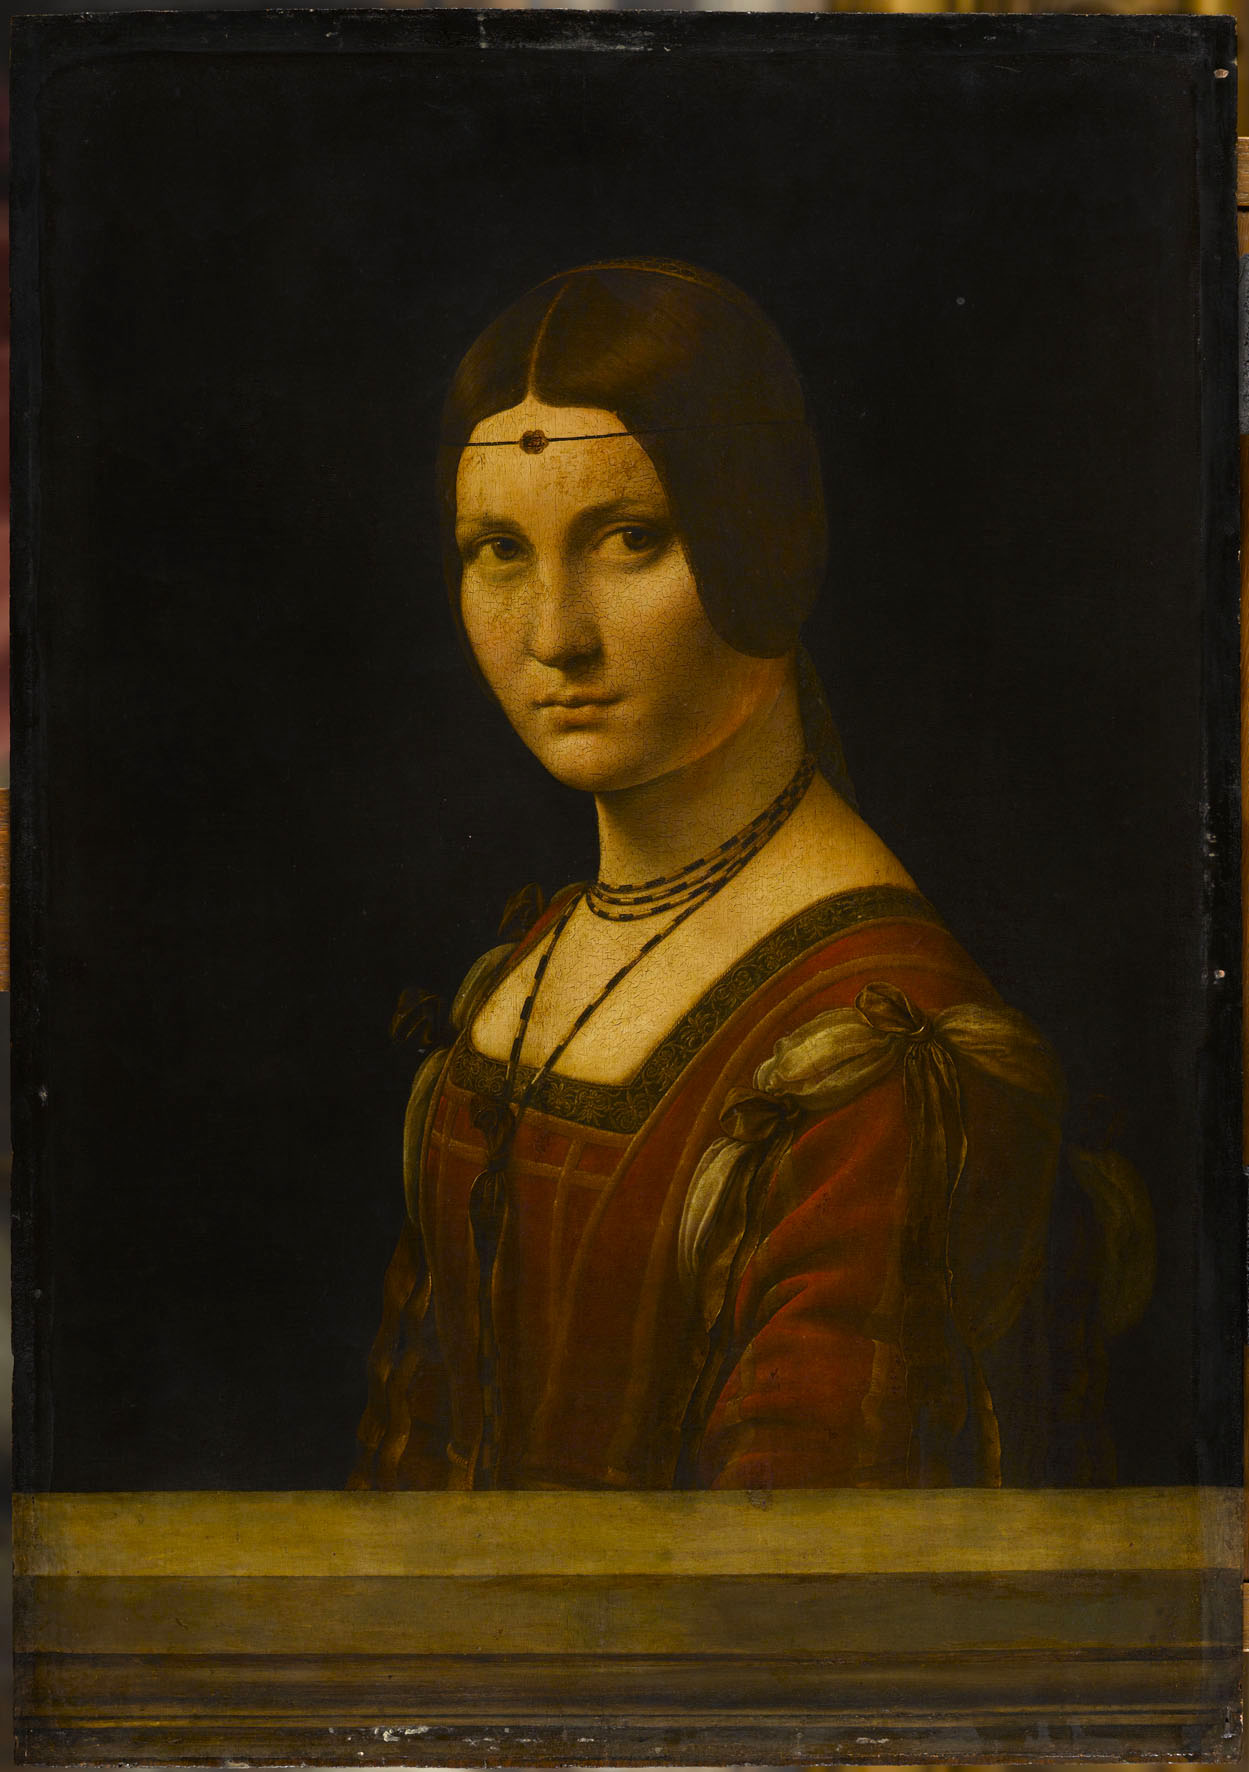 Leonardo da Vinci, Portrait of a Woman ('La Belle Ferronnière'), c. 1493–4, oil